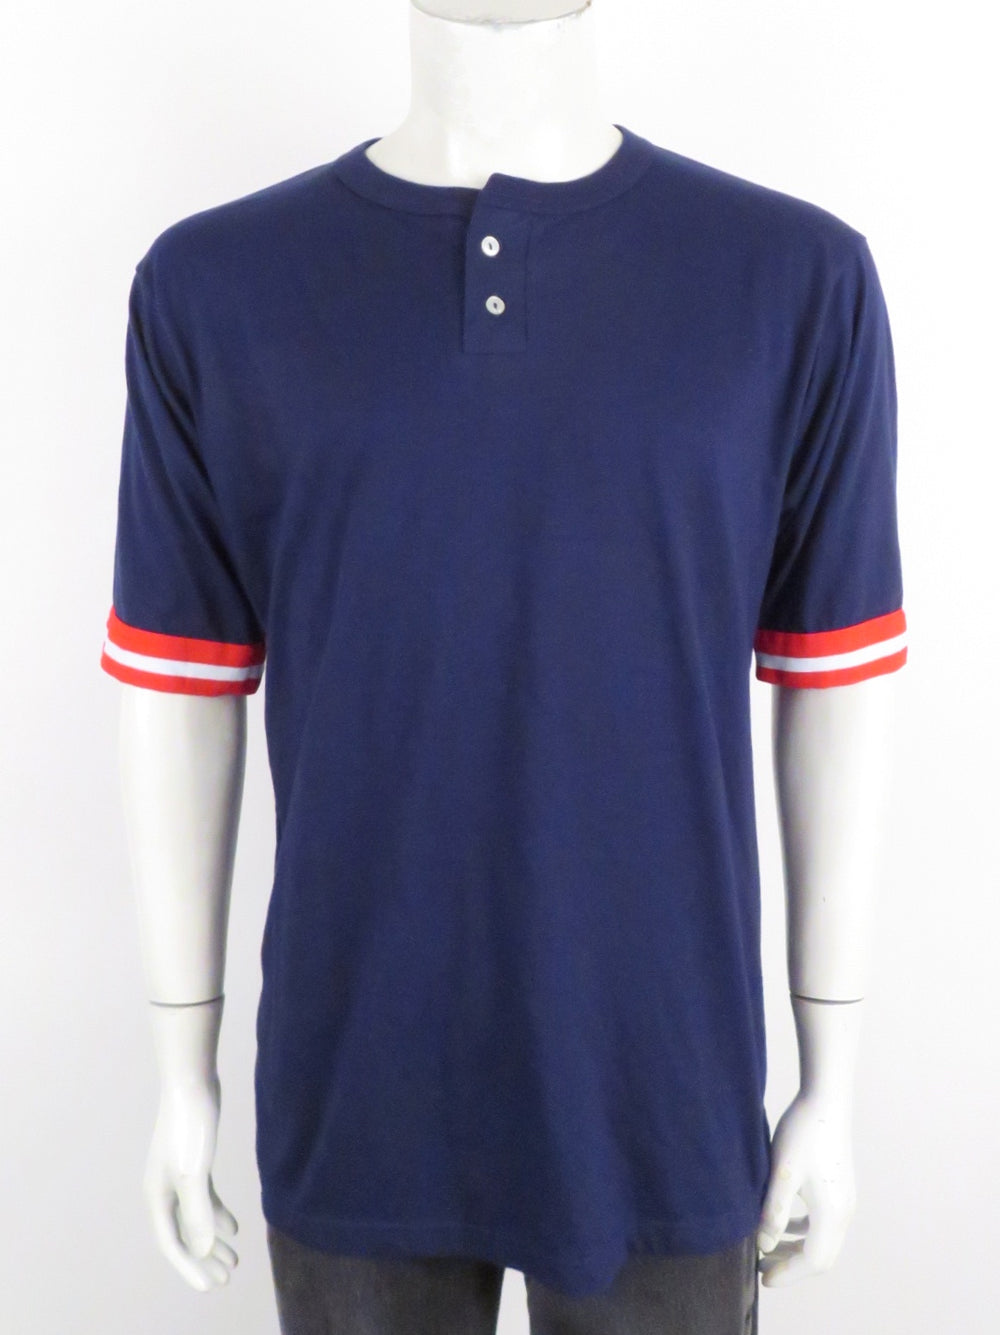 unlabeled navy henley shirt. features red/white stripe ribbed cuffs. double button placket.